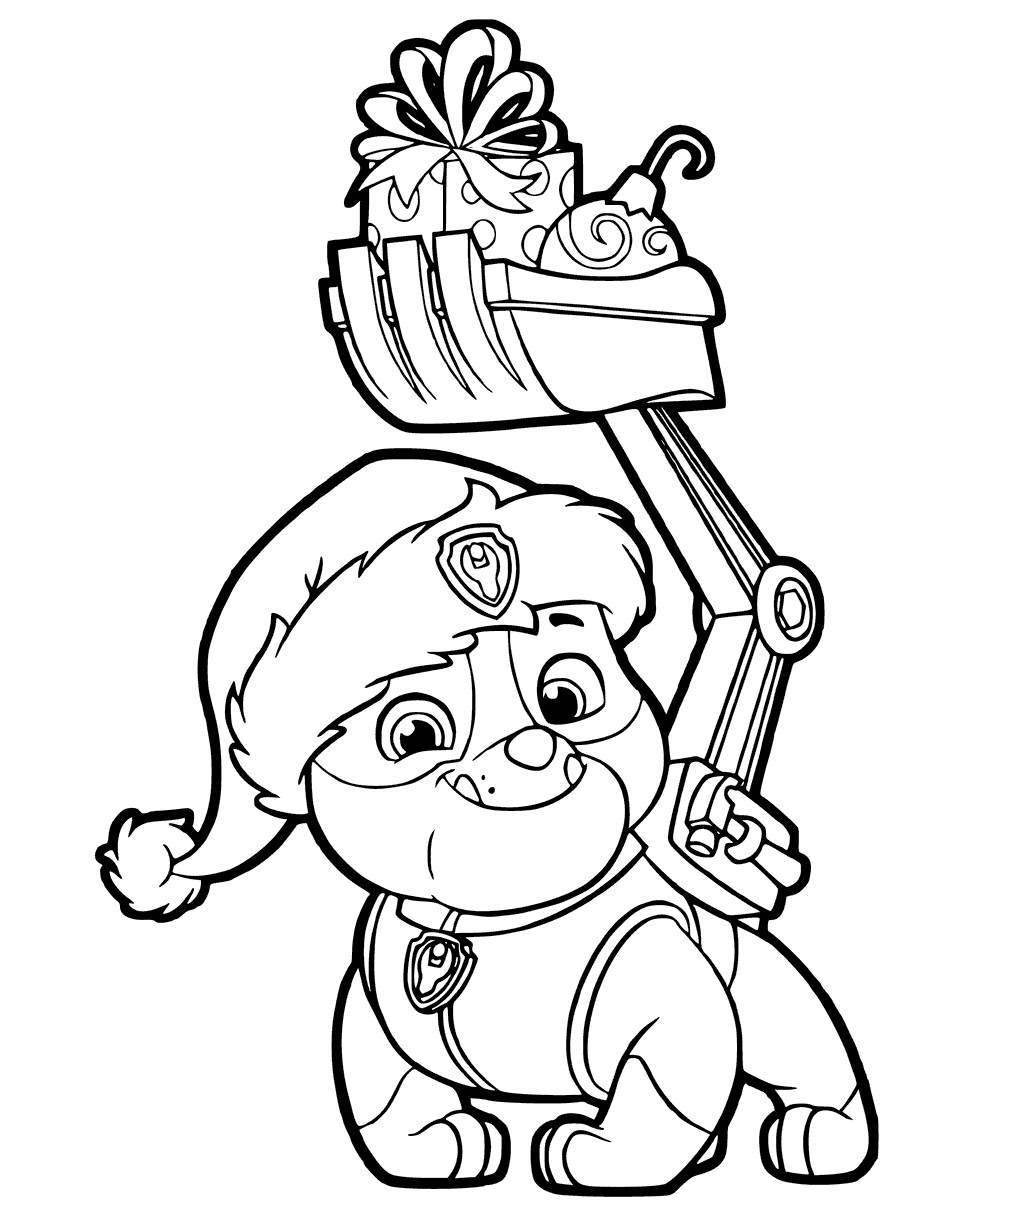 Nickelodeon Coloring Pages Paw Patrol Coloring Sheets Free